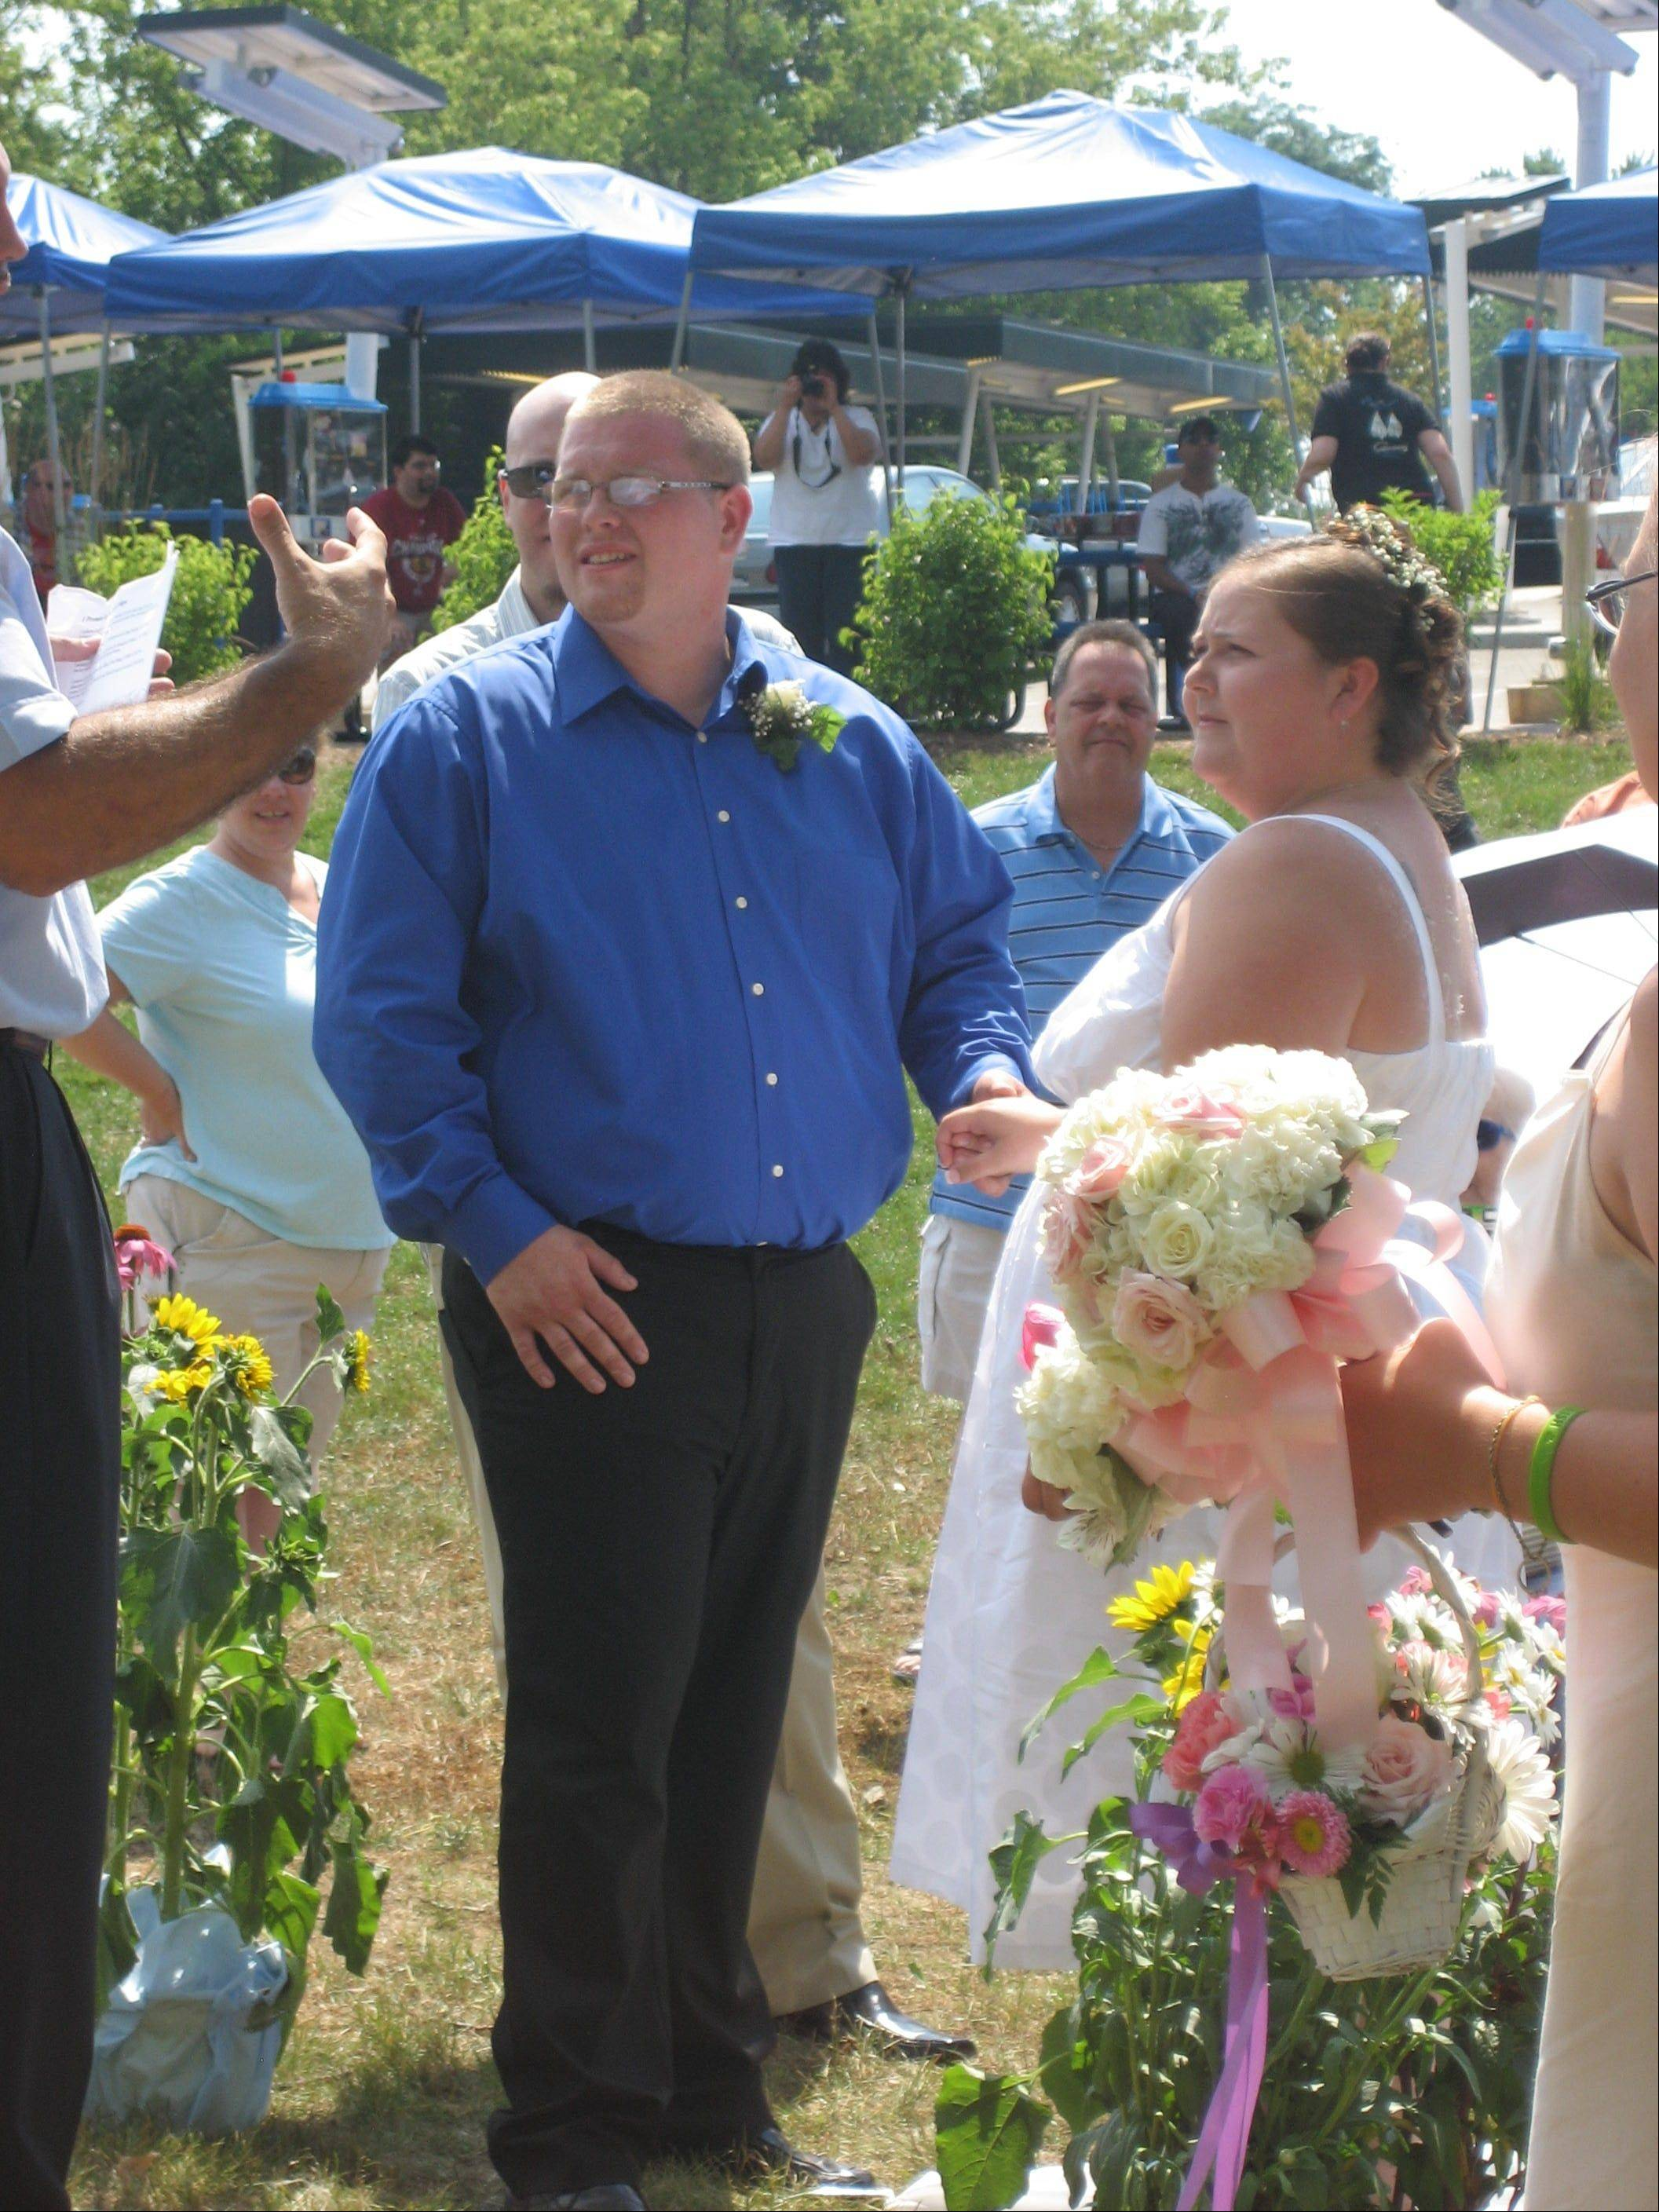 Eddie and Brittany McKee tie the knot at Superdawg in Wheeling.